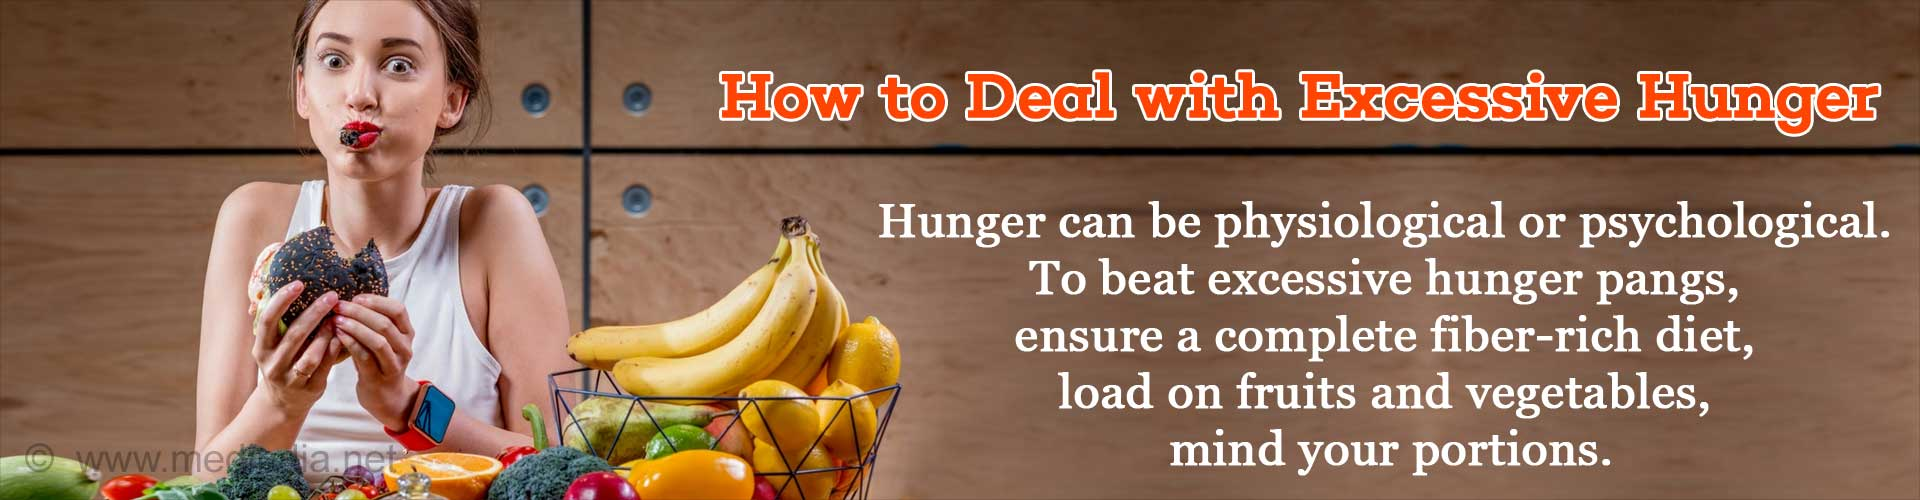 How to Deal with Excessive Hunger - Hunger can be physiological or psychological. To beat excessive hunger pangs, ensure a complete fiber-rich diet, load on fruits and vegetables, mind your portions.